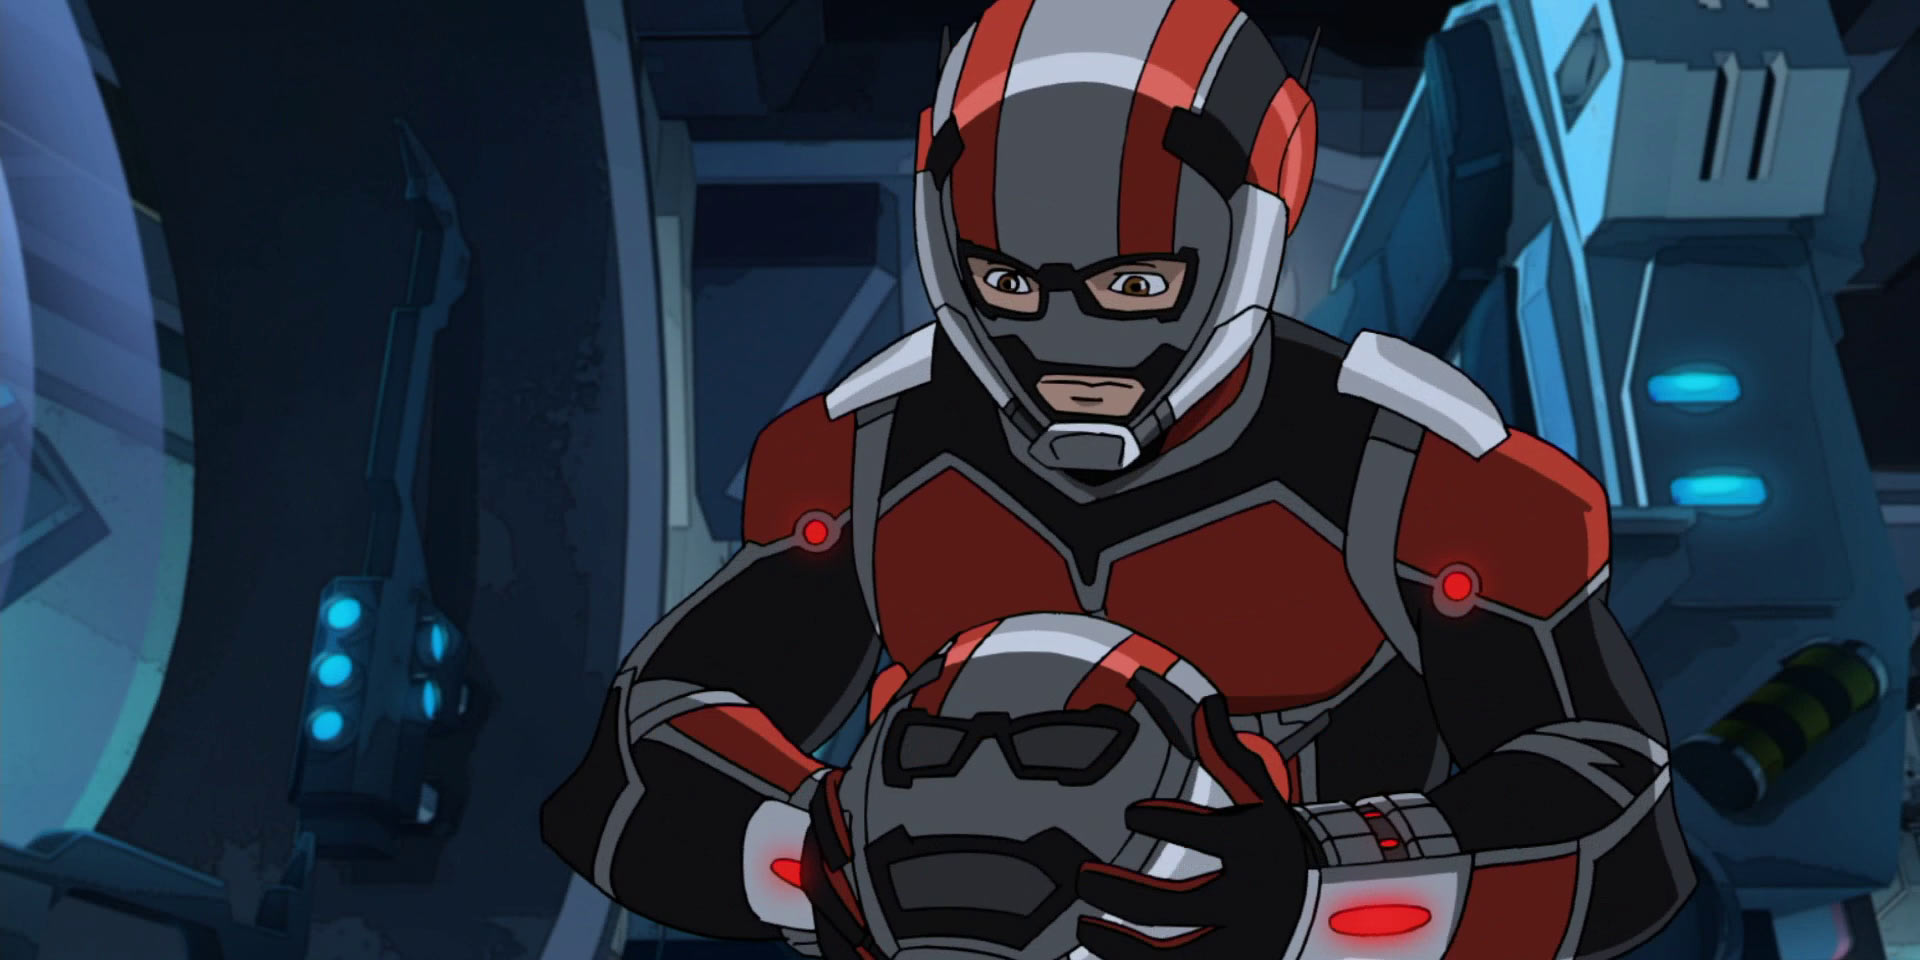 NYCC: Marvel's Ant-Man Animated Shorts Coming to Disney XD